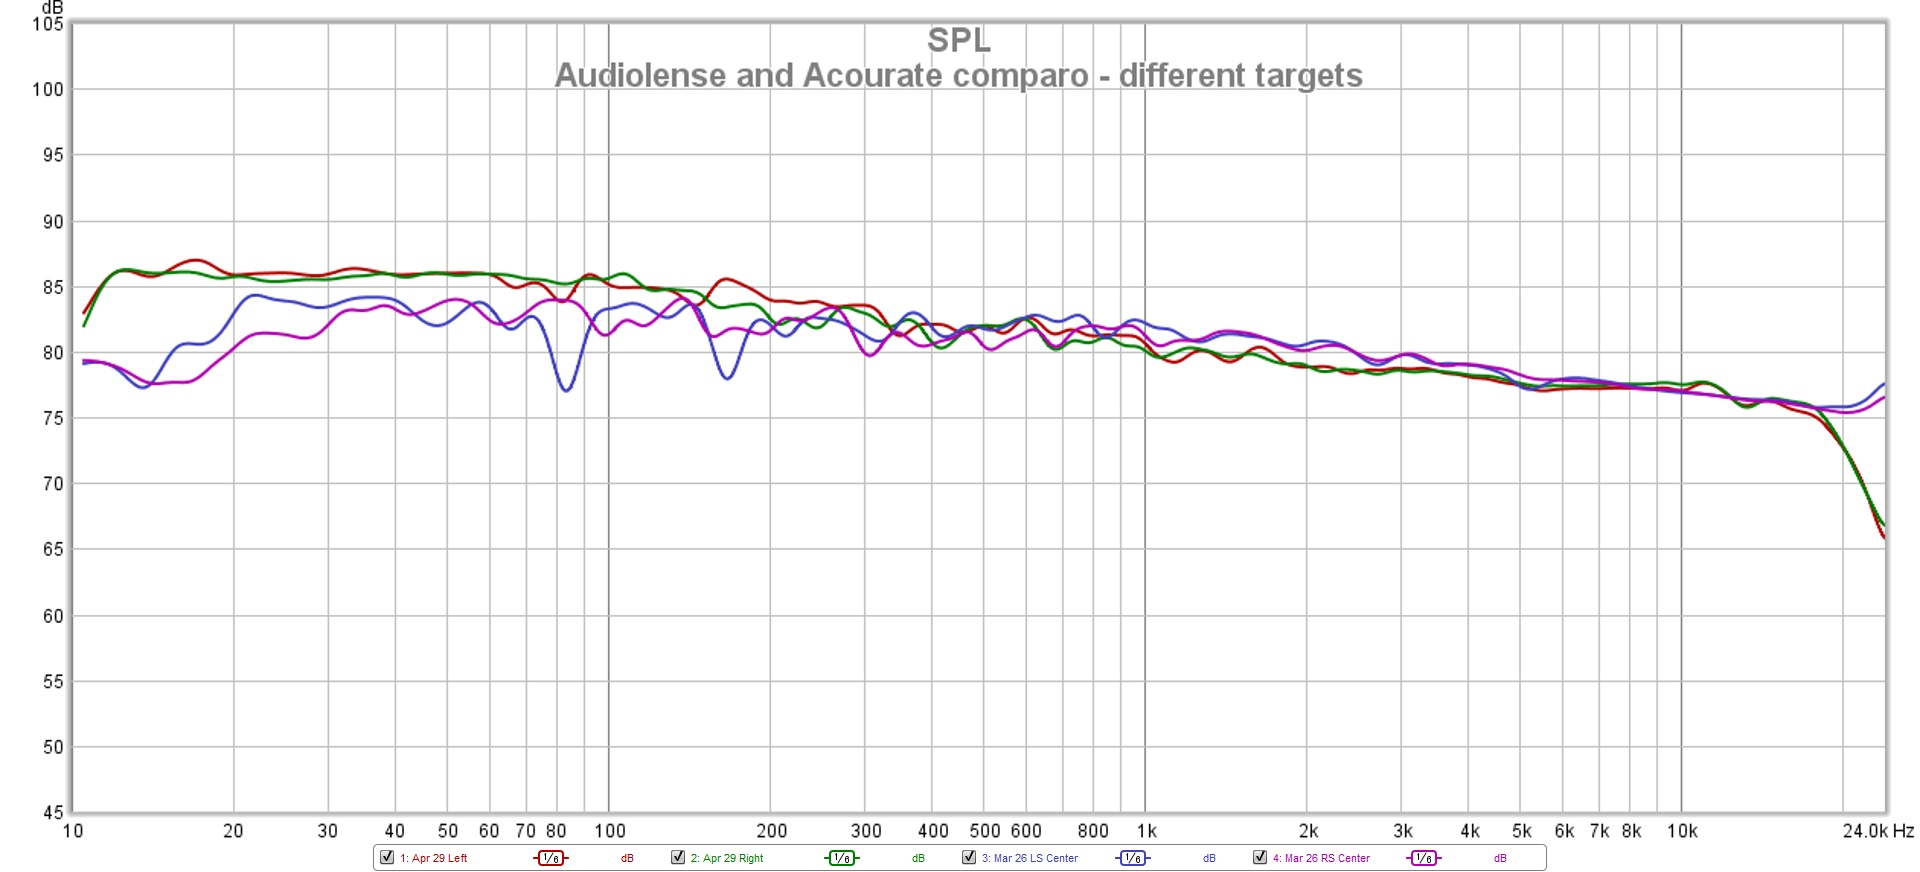 Audiolense and Acourate comparo - different targets.jpg